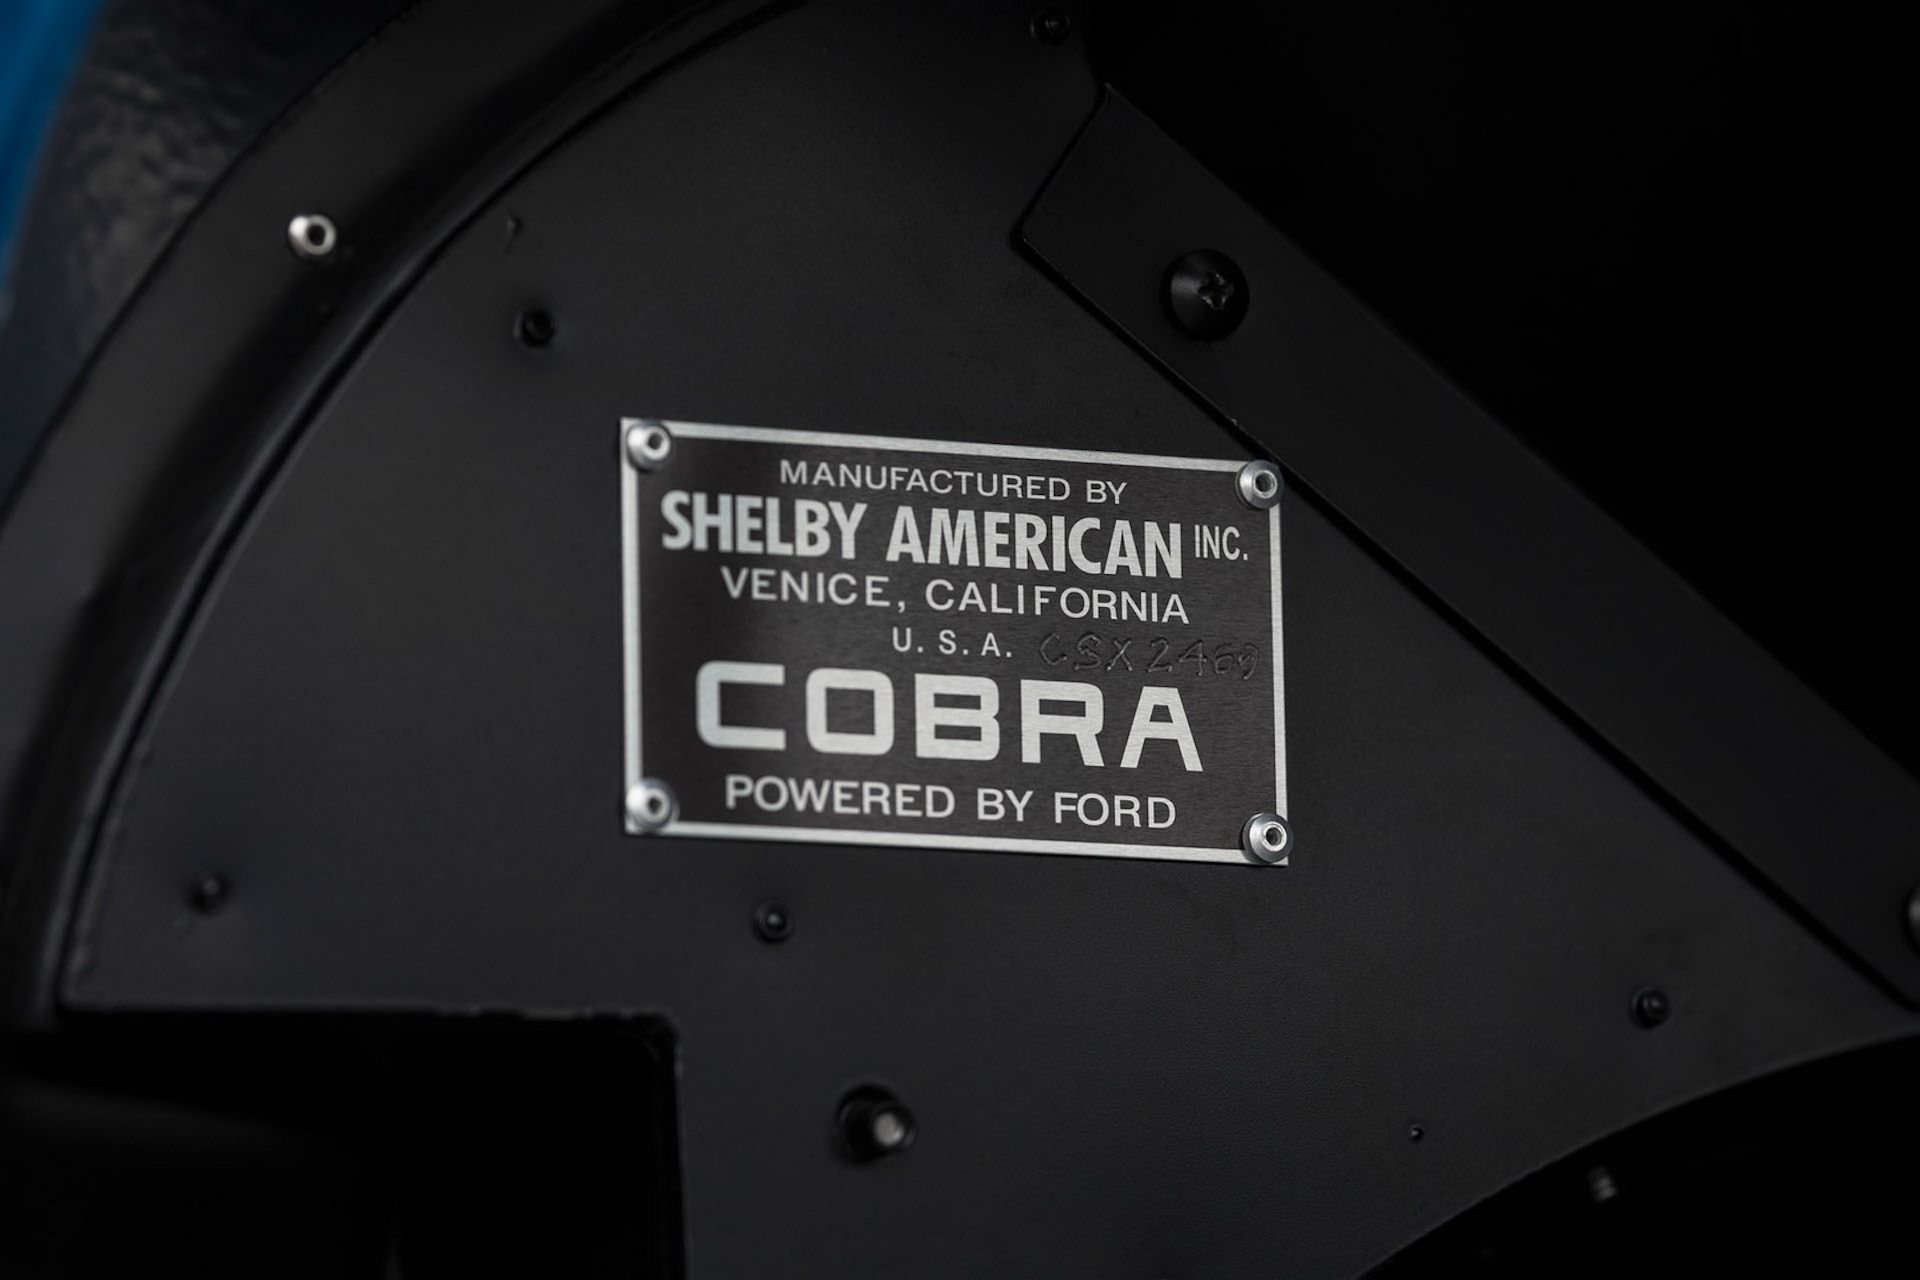 Daytona-Cobra-Carroll-Shelby-auction-AC-Cobra-11